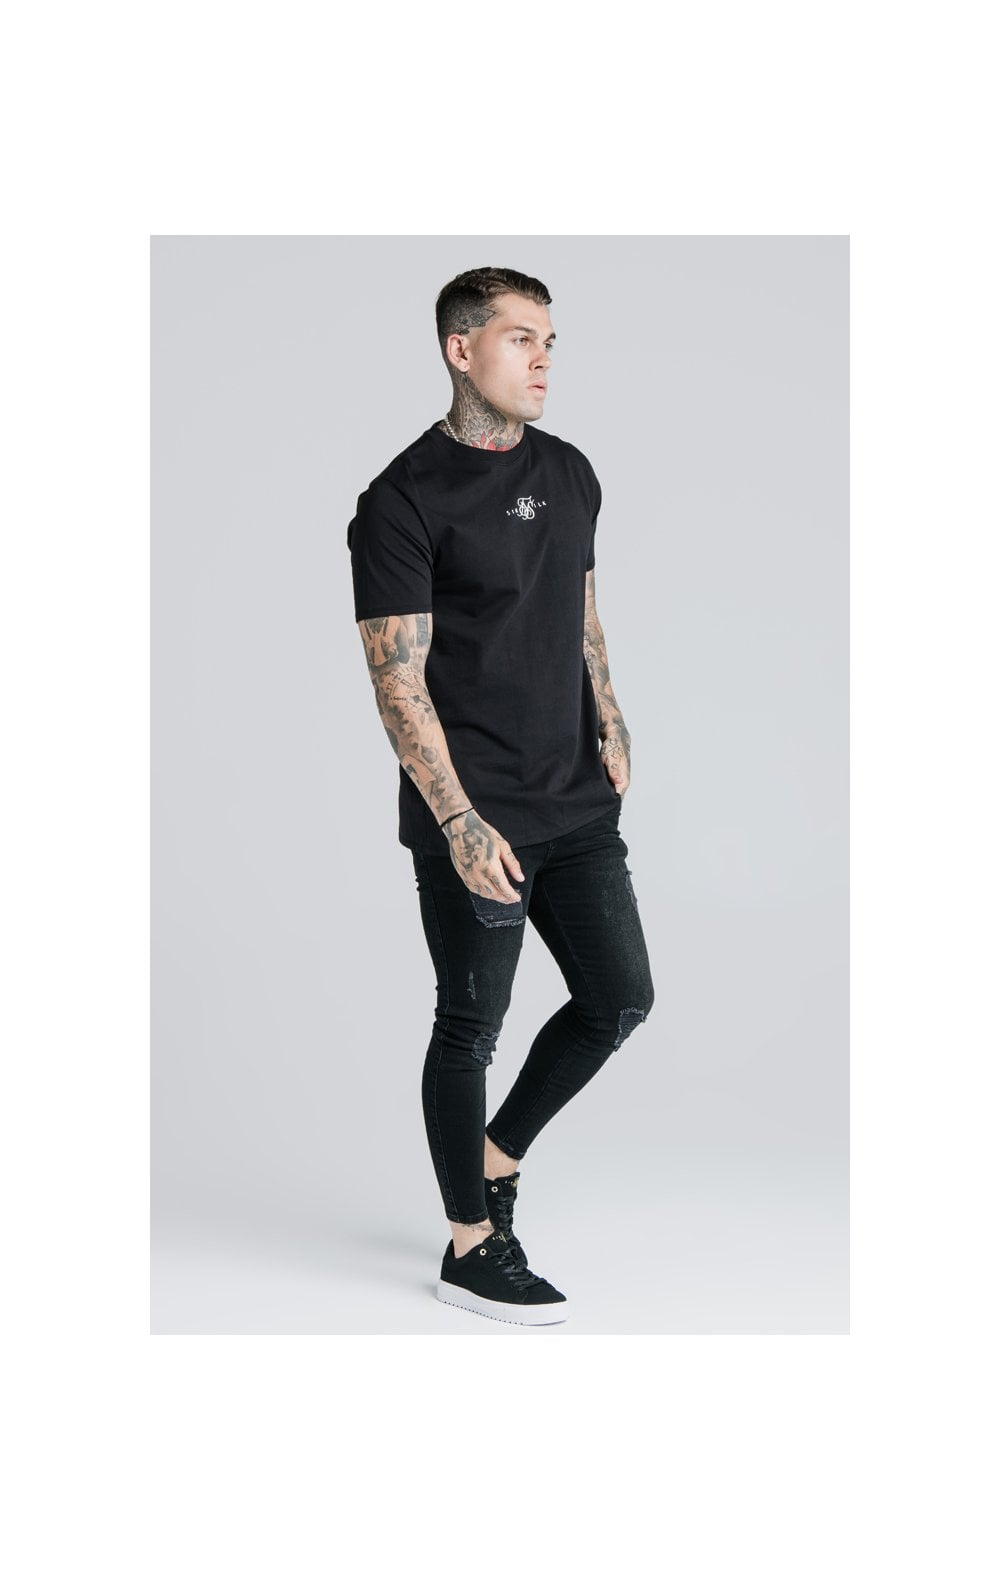 SikSilk S/S Basic Core Tee – Black (4)